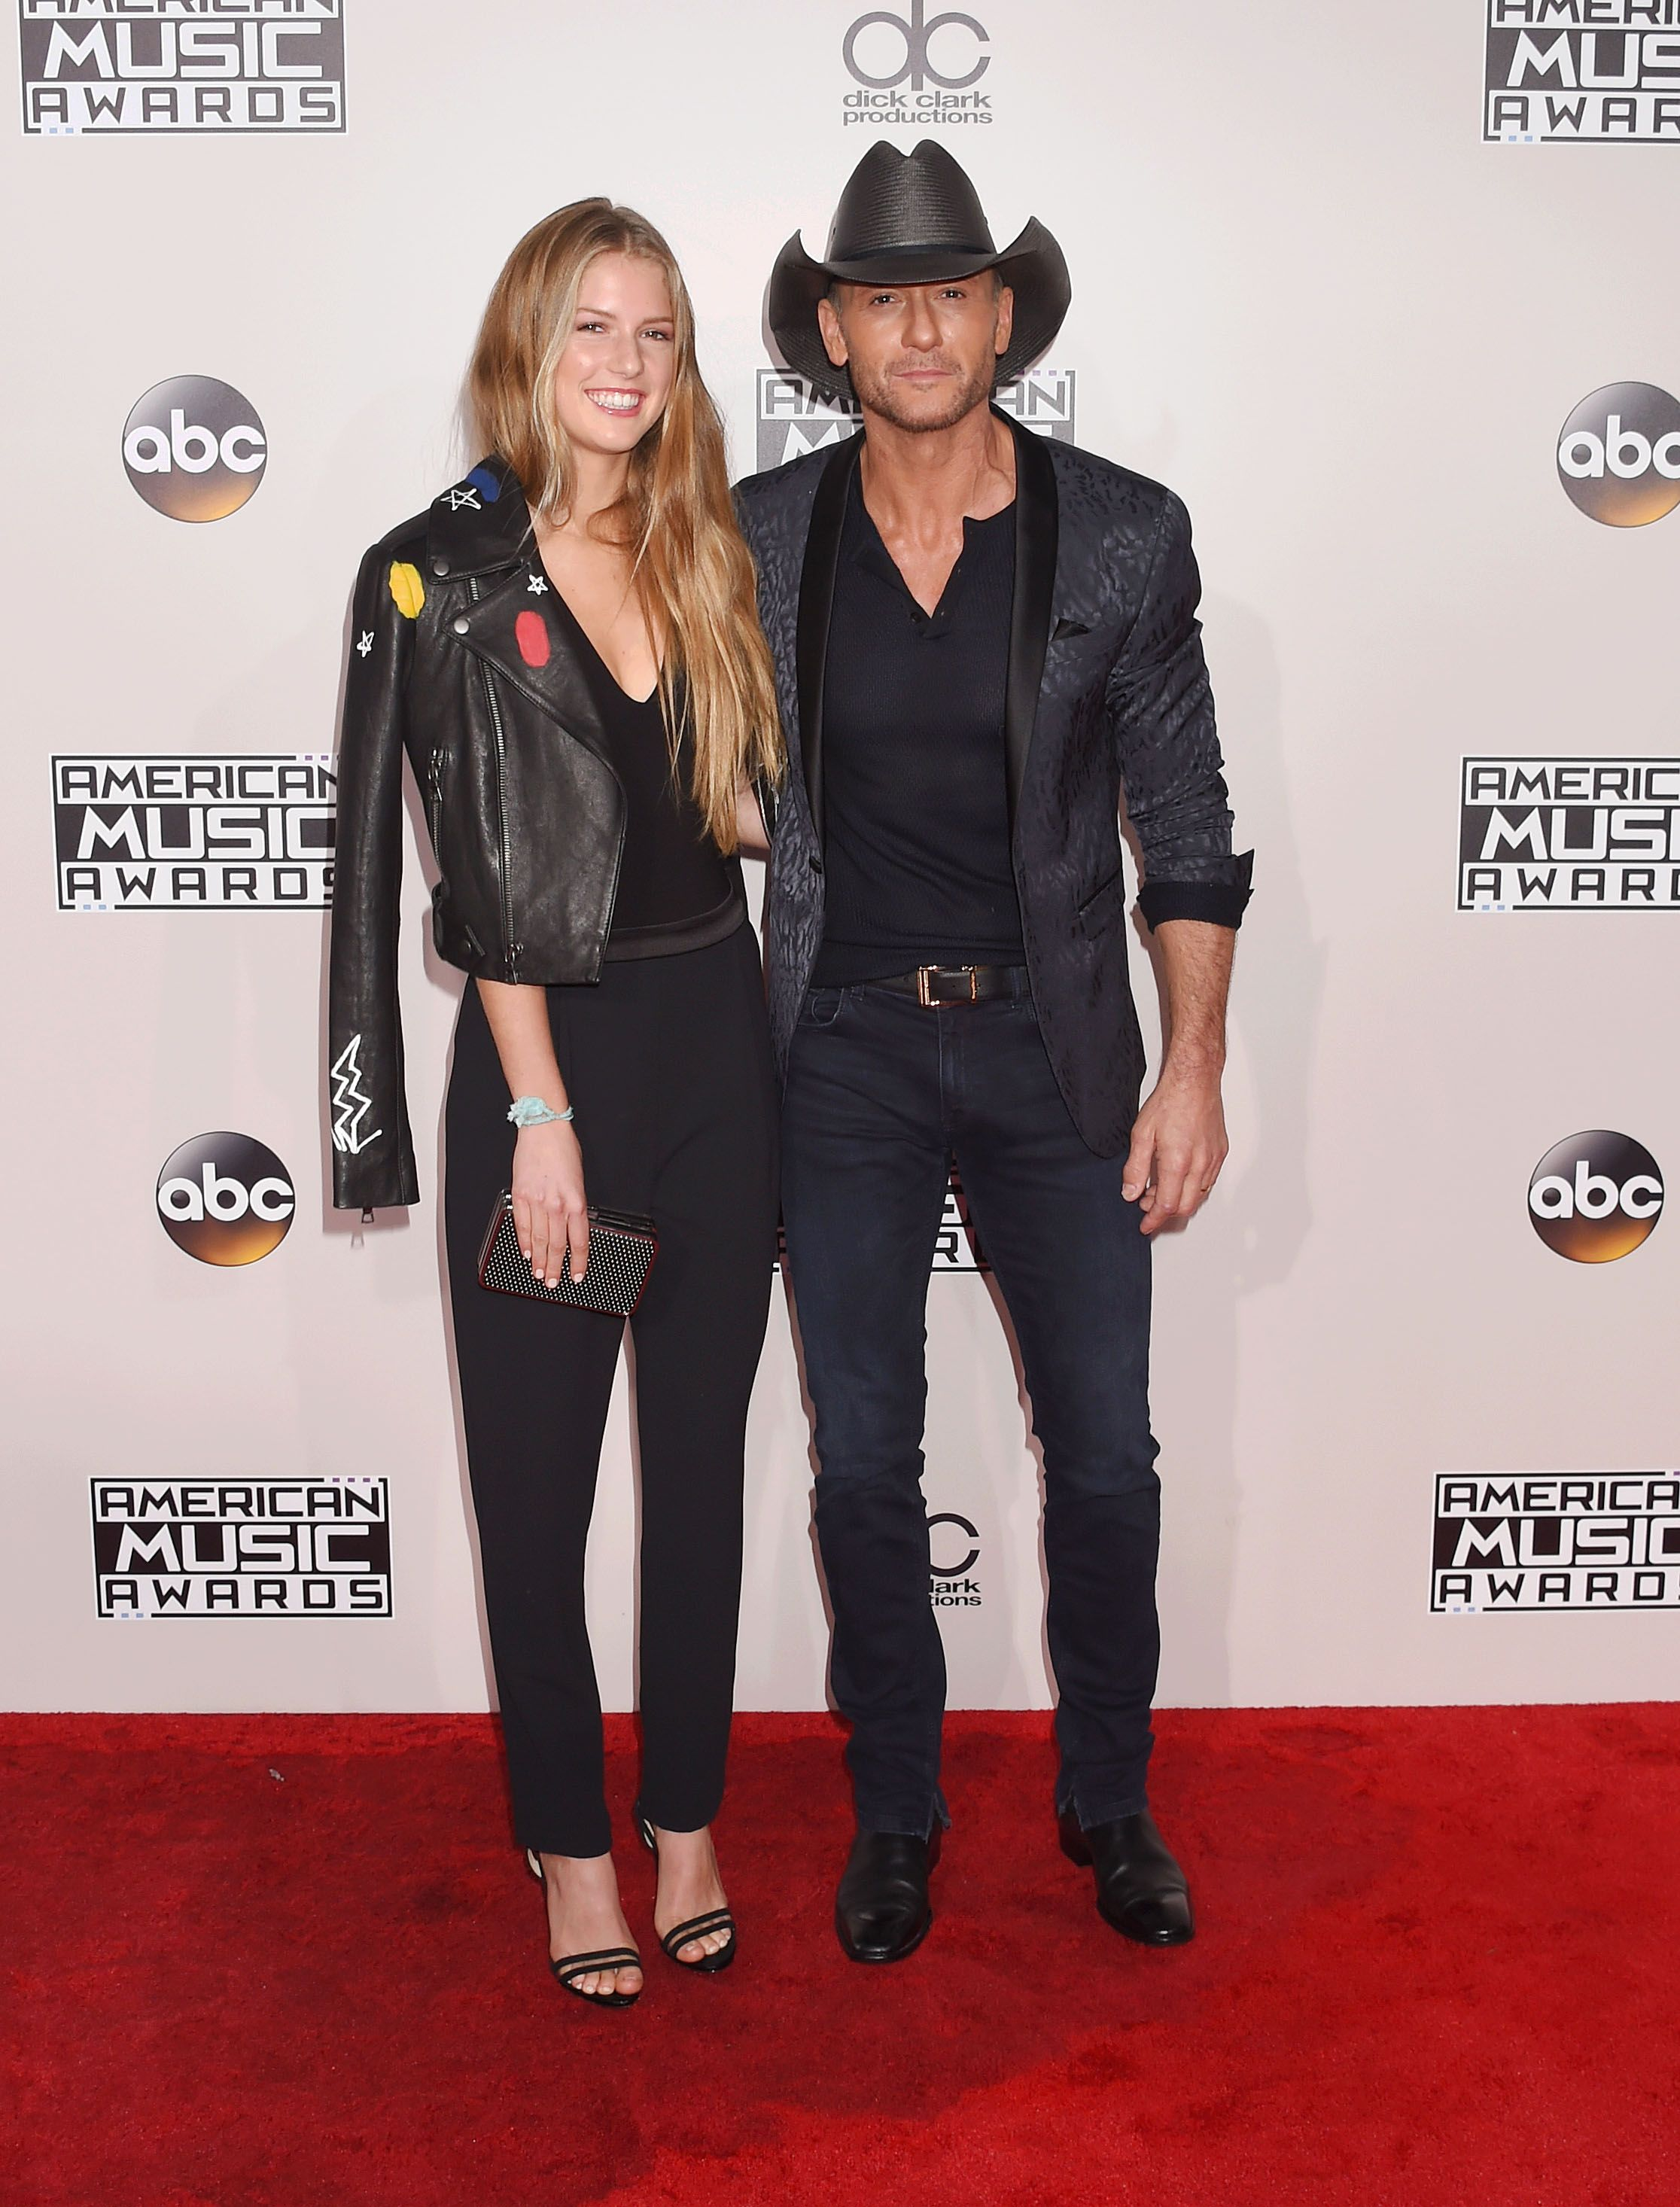 Maggie Elizabeth McGraw and Tim McGraw at the 2016 American Music Awards at Microsoft Theater on November 20, 2016 | Photo: Getty Images